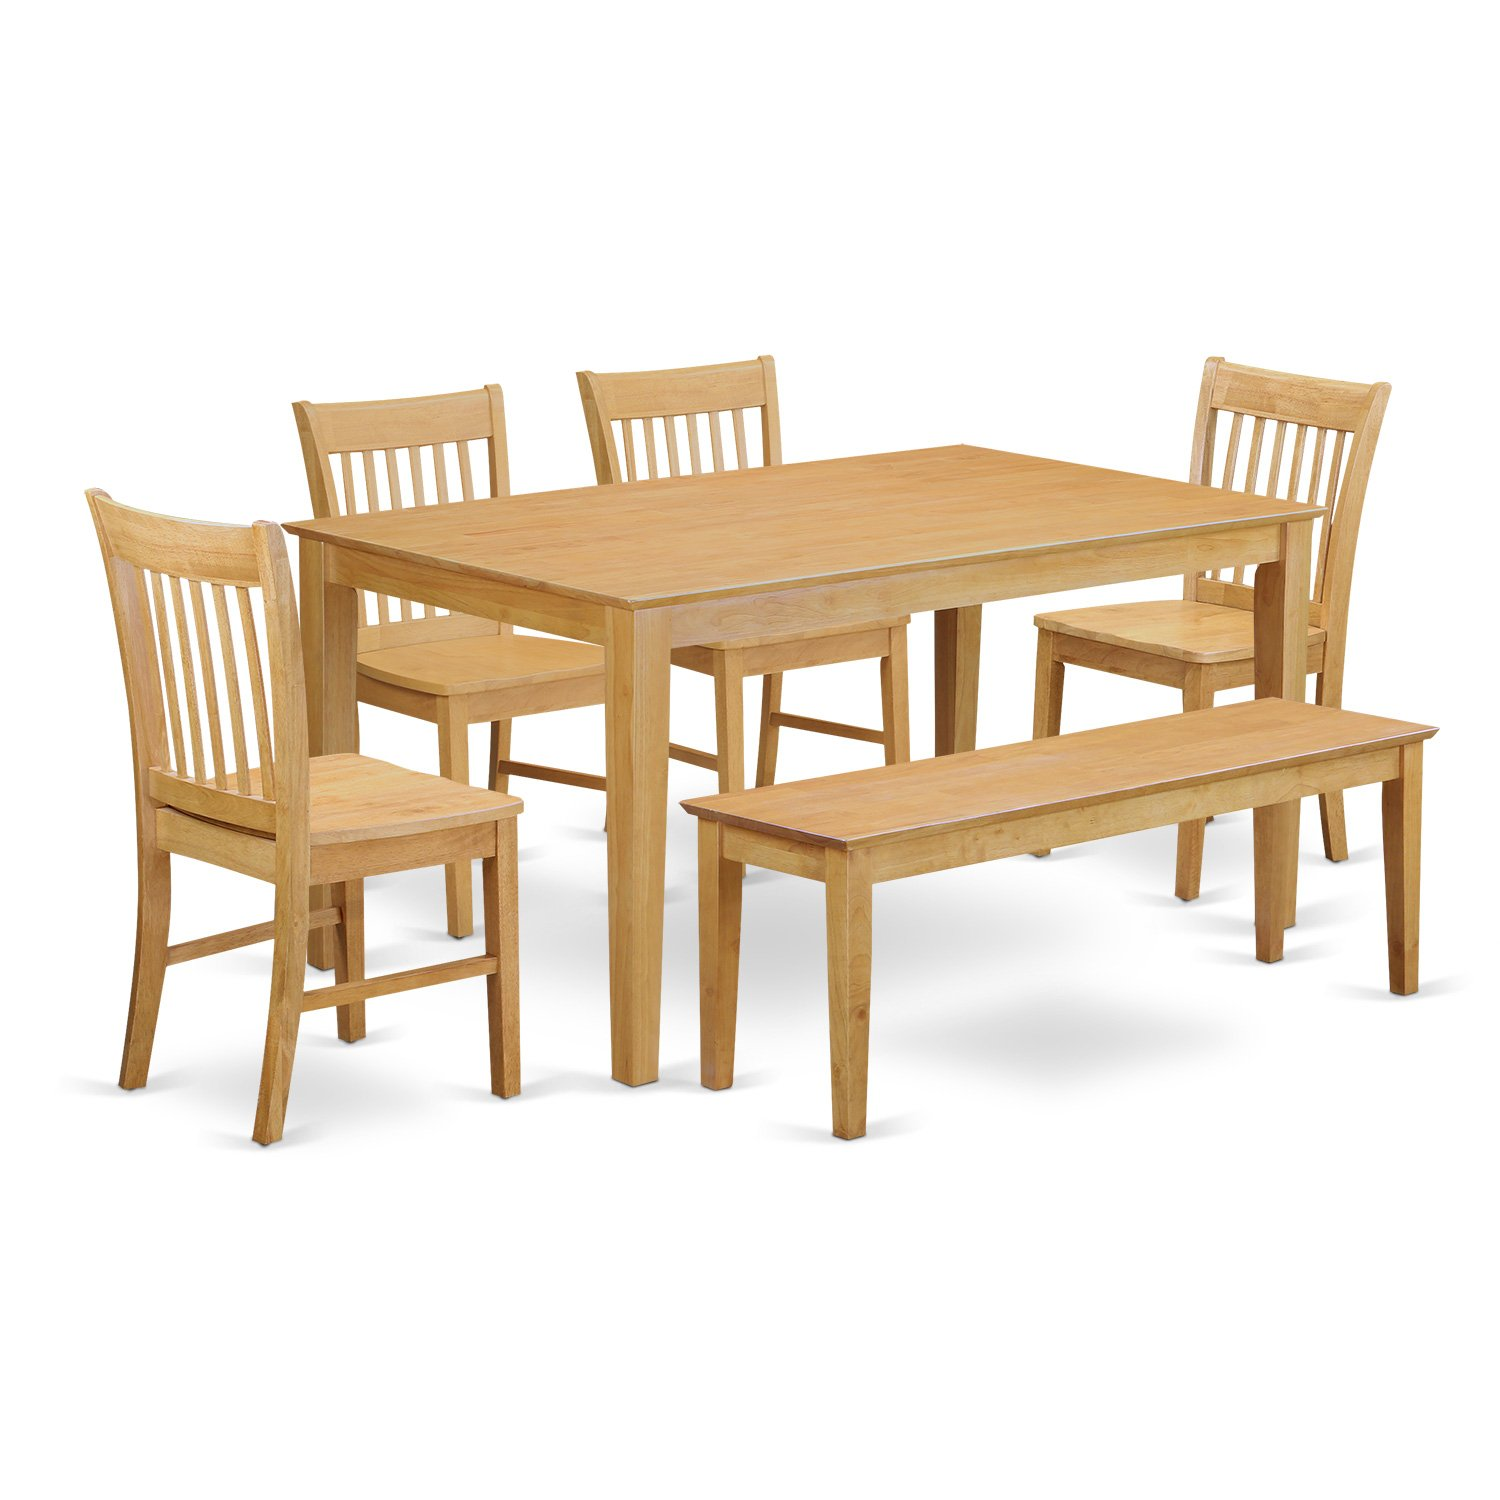 Amazon.com East West Furniture CANO6-OAK-W 6-Piece Dining Table Set Kitchen u0026 Dining  sc 1 st  Amazon.com : dining table set of 4 - pezcame.com